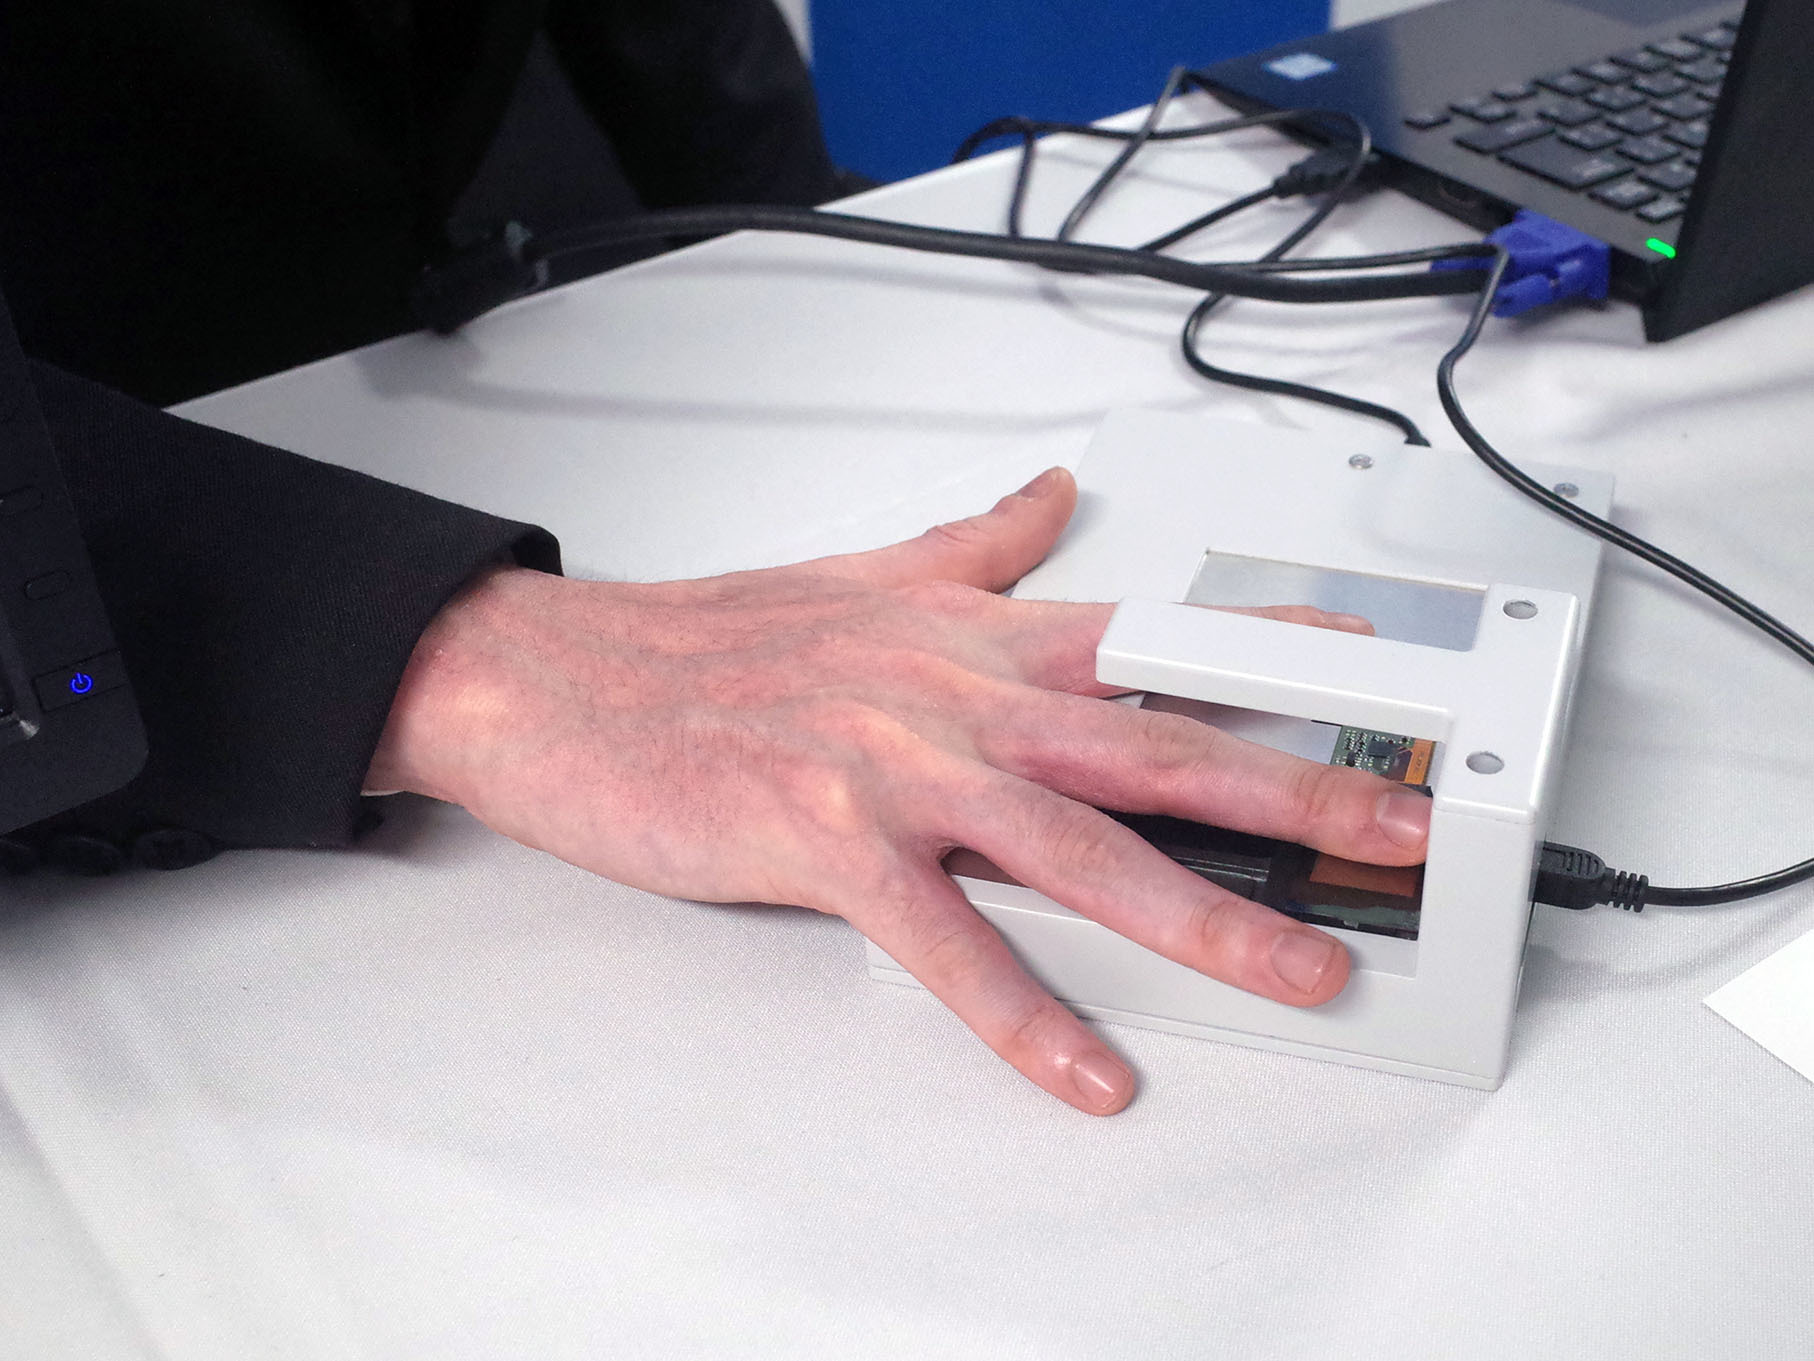 Stationary type that measures by placing a finger